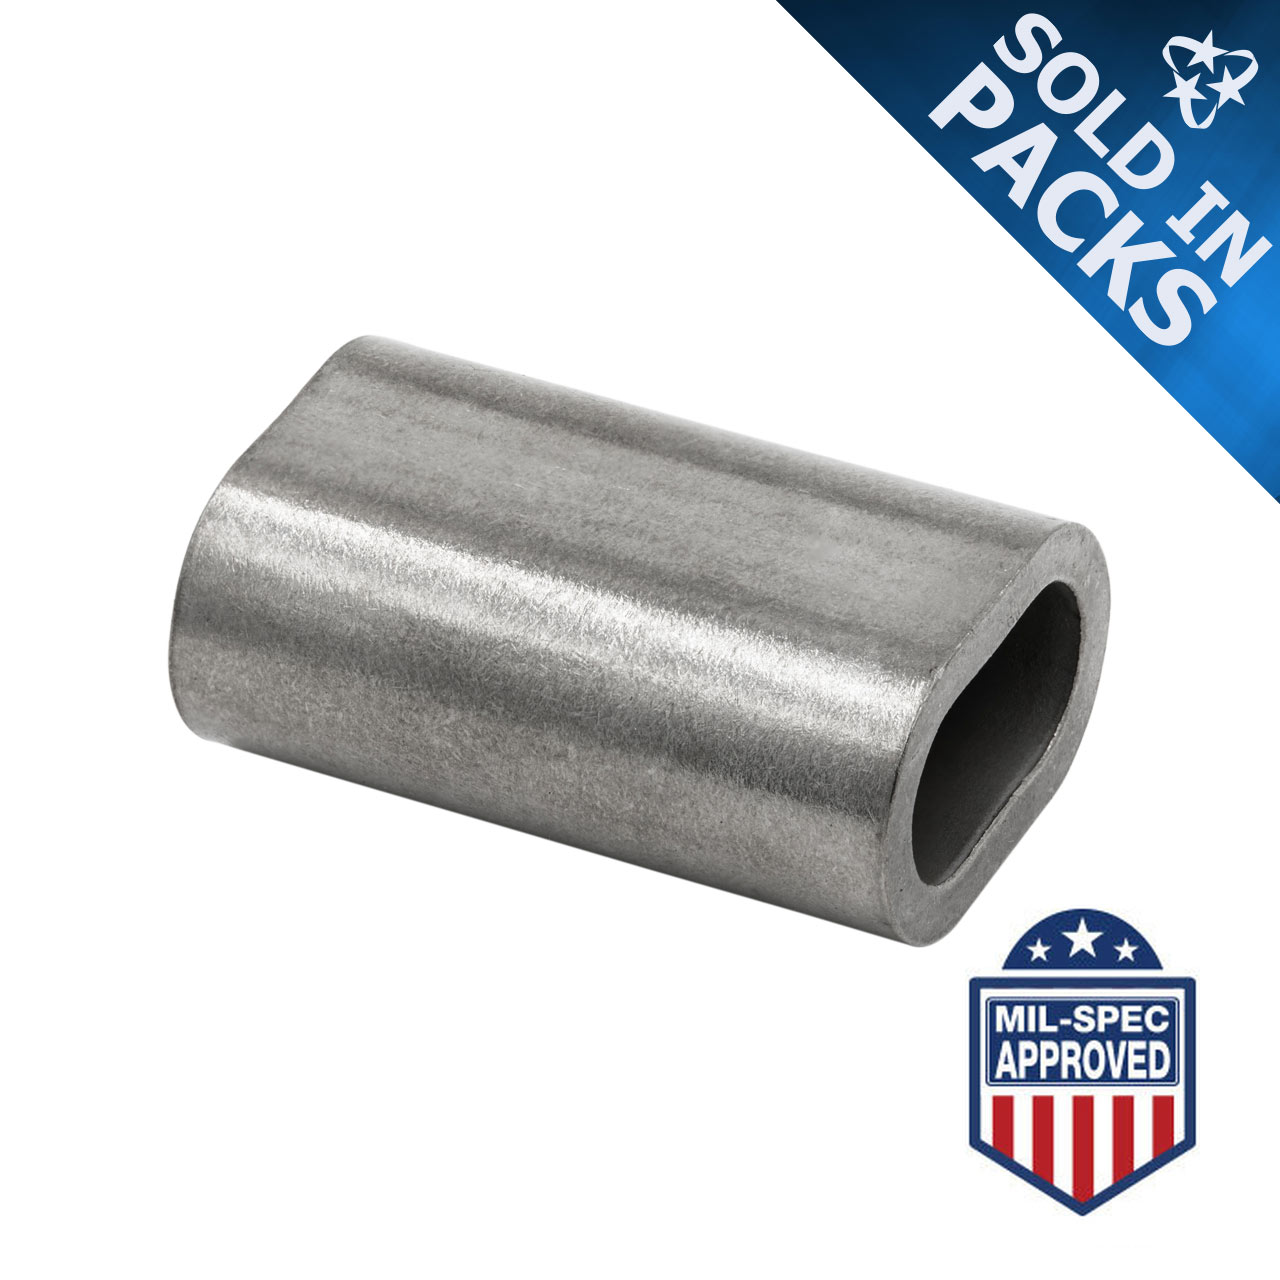 for Wire Rope Diameters 5//32 - 316 Stainless Steel Material 50-Pack DuraBrite Wire Rope Thimbles Marine Grade Light-Duty